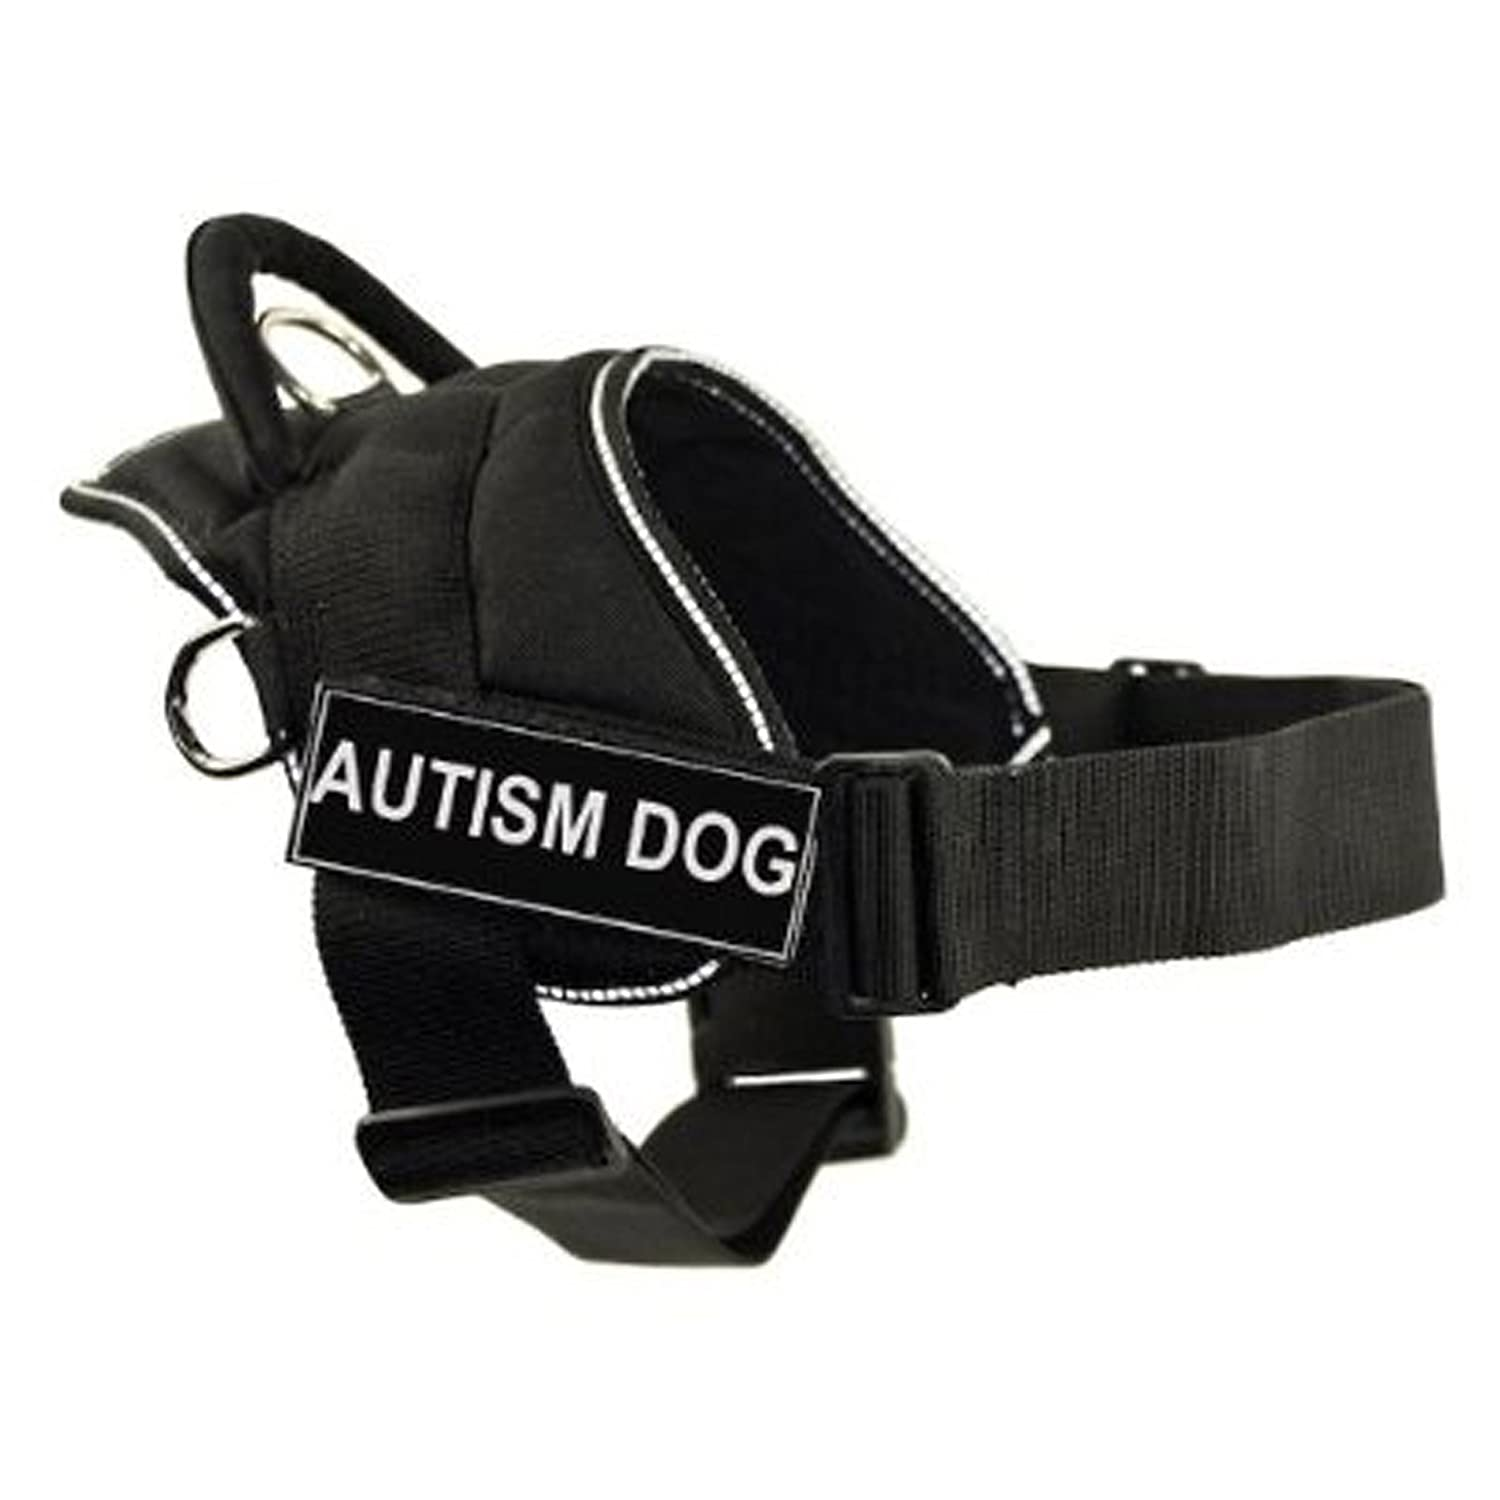 Dean & Tyler Fun Works Harness, Autism Dog, Black with Reflective Trim, XX-Small, Fits Girth Size  18-Inch to 22-Inch